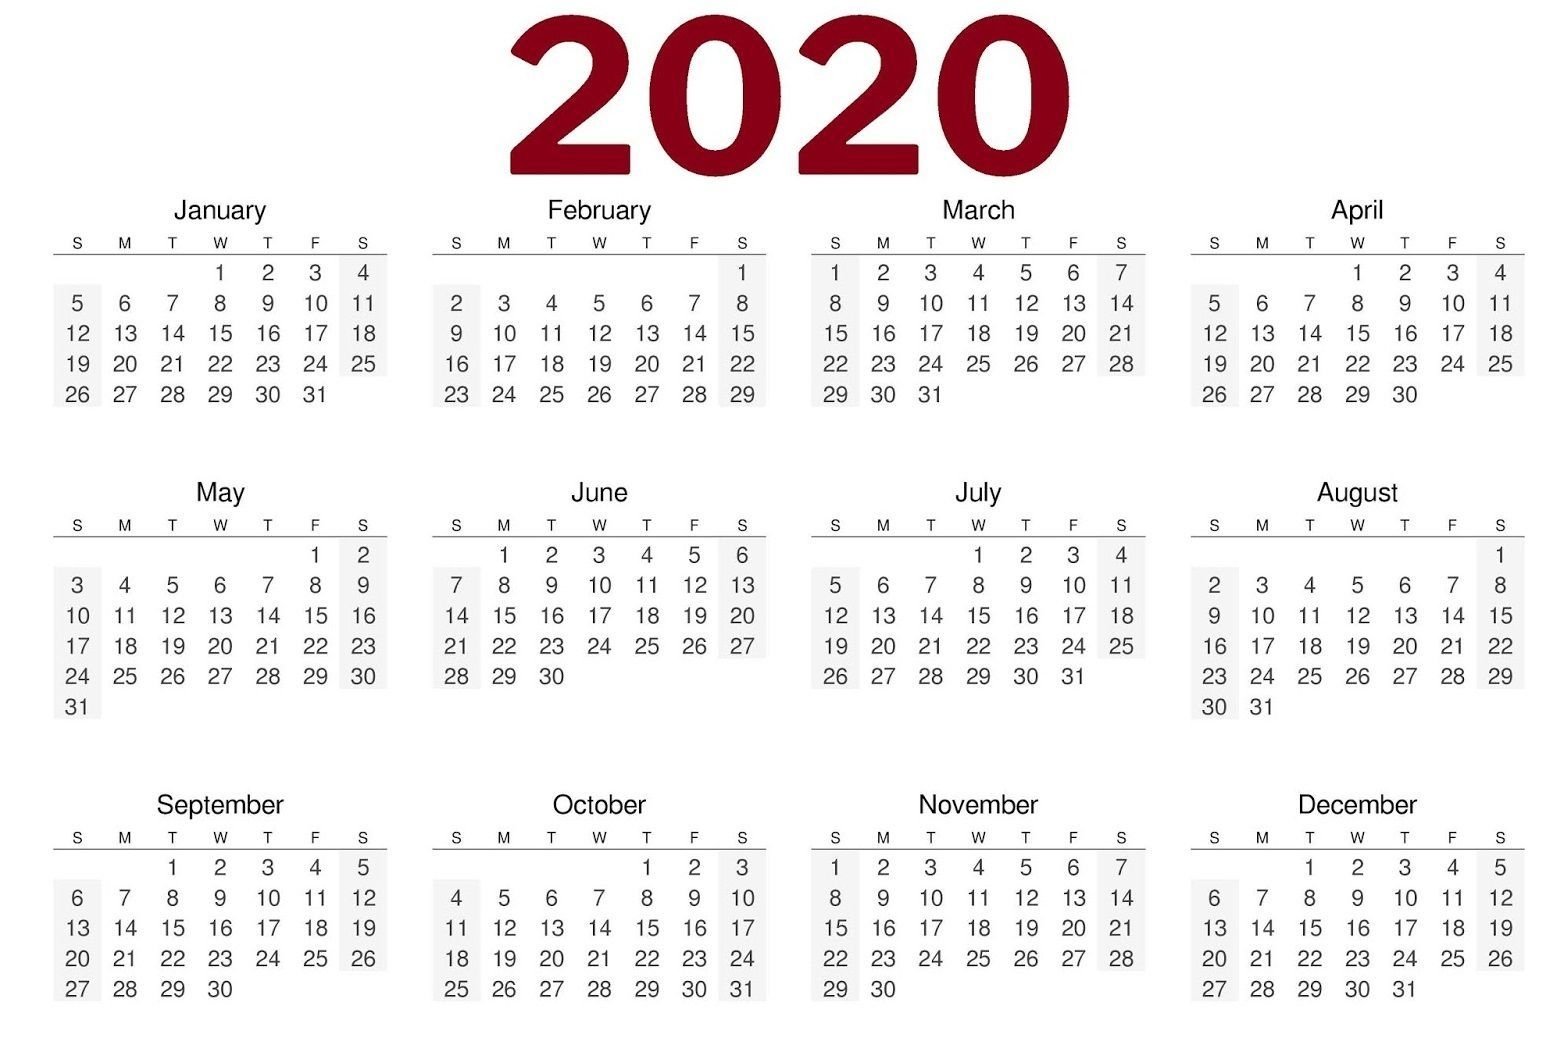 2020 One Page Calendar Printable (With Images) | Printable